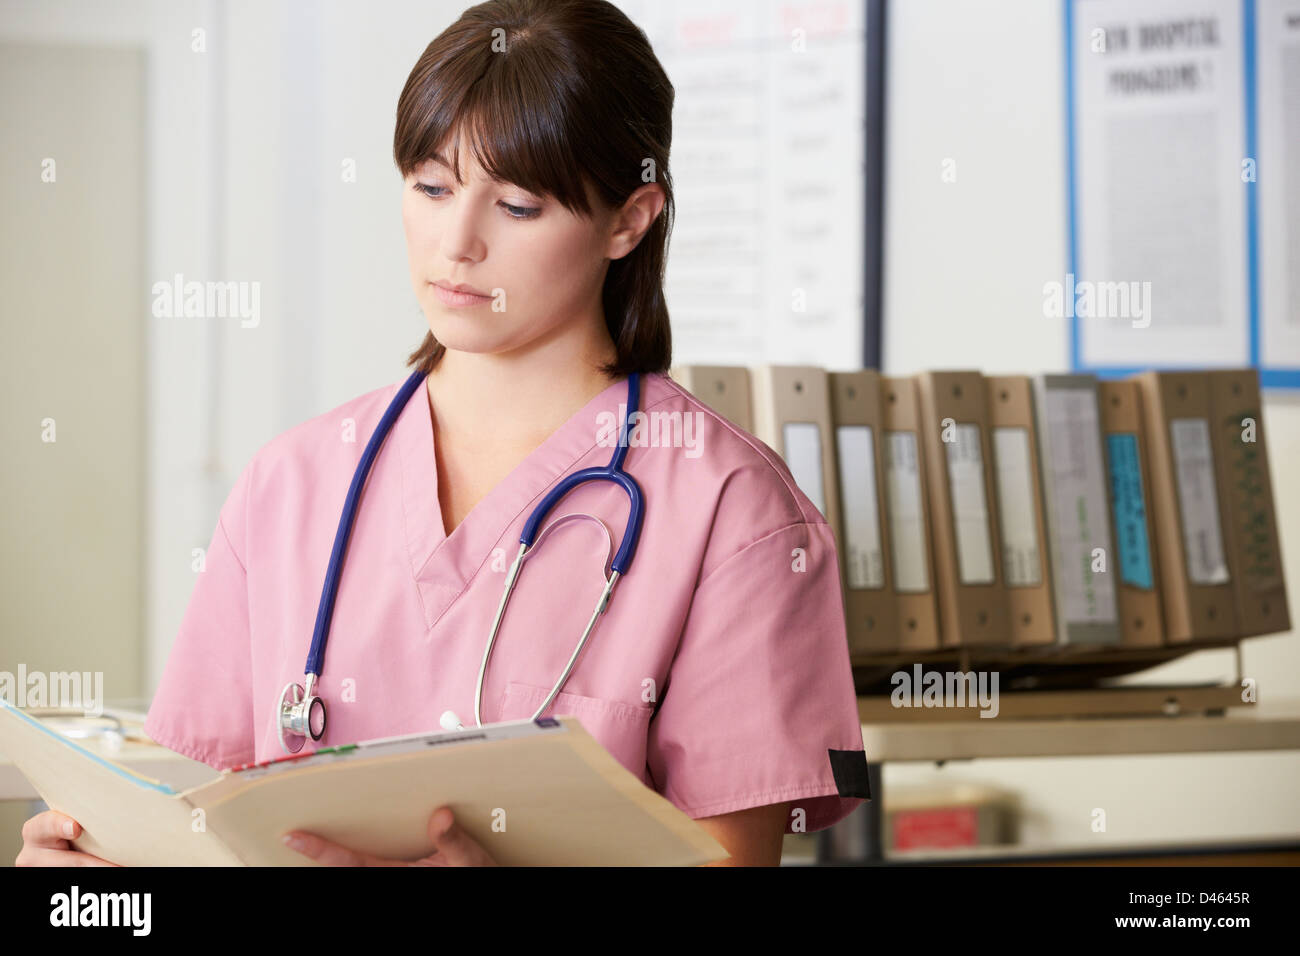 Nurse Reading Patient Notes At Nurses Station - Stock Image